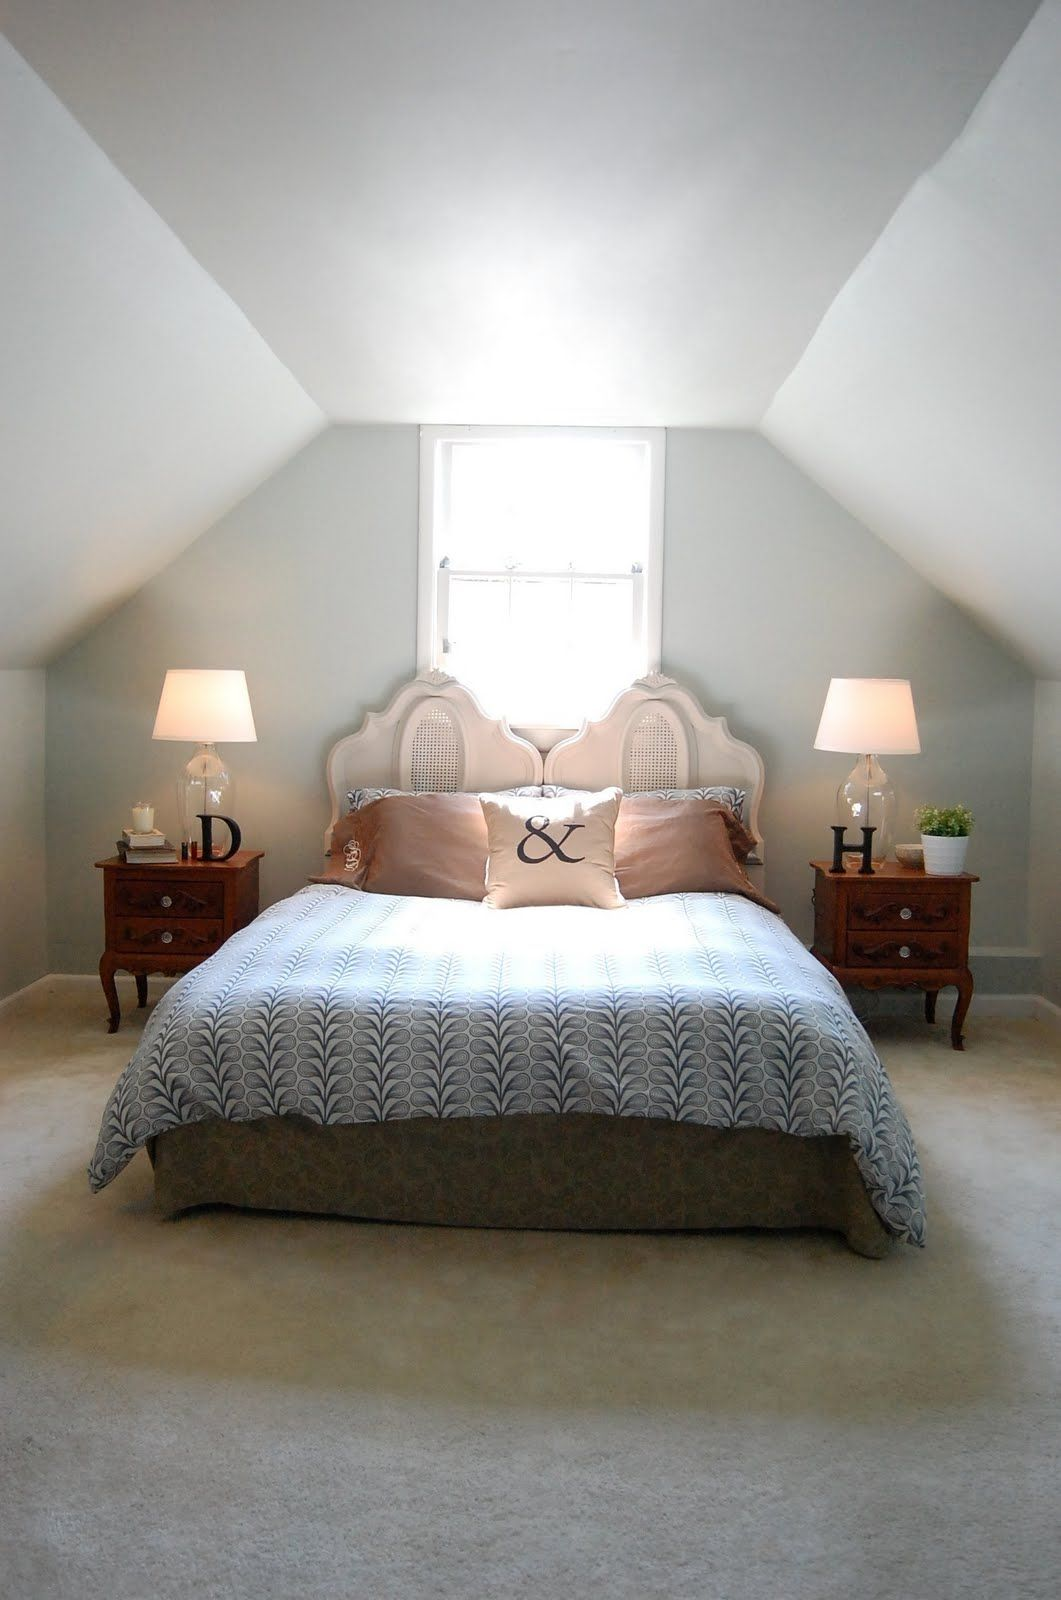 Rearrange Our Master Bedroom Wall Color Benjamin Moore Quiet Moments Duvet Ikea Ampersand Pillow Cover From Homegoods Home Decor Bedroom Wall Colors Home